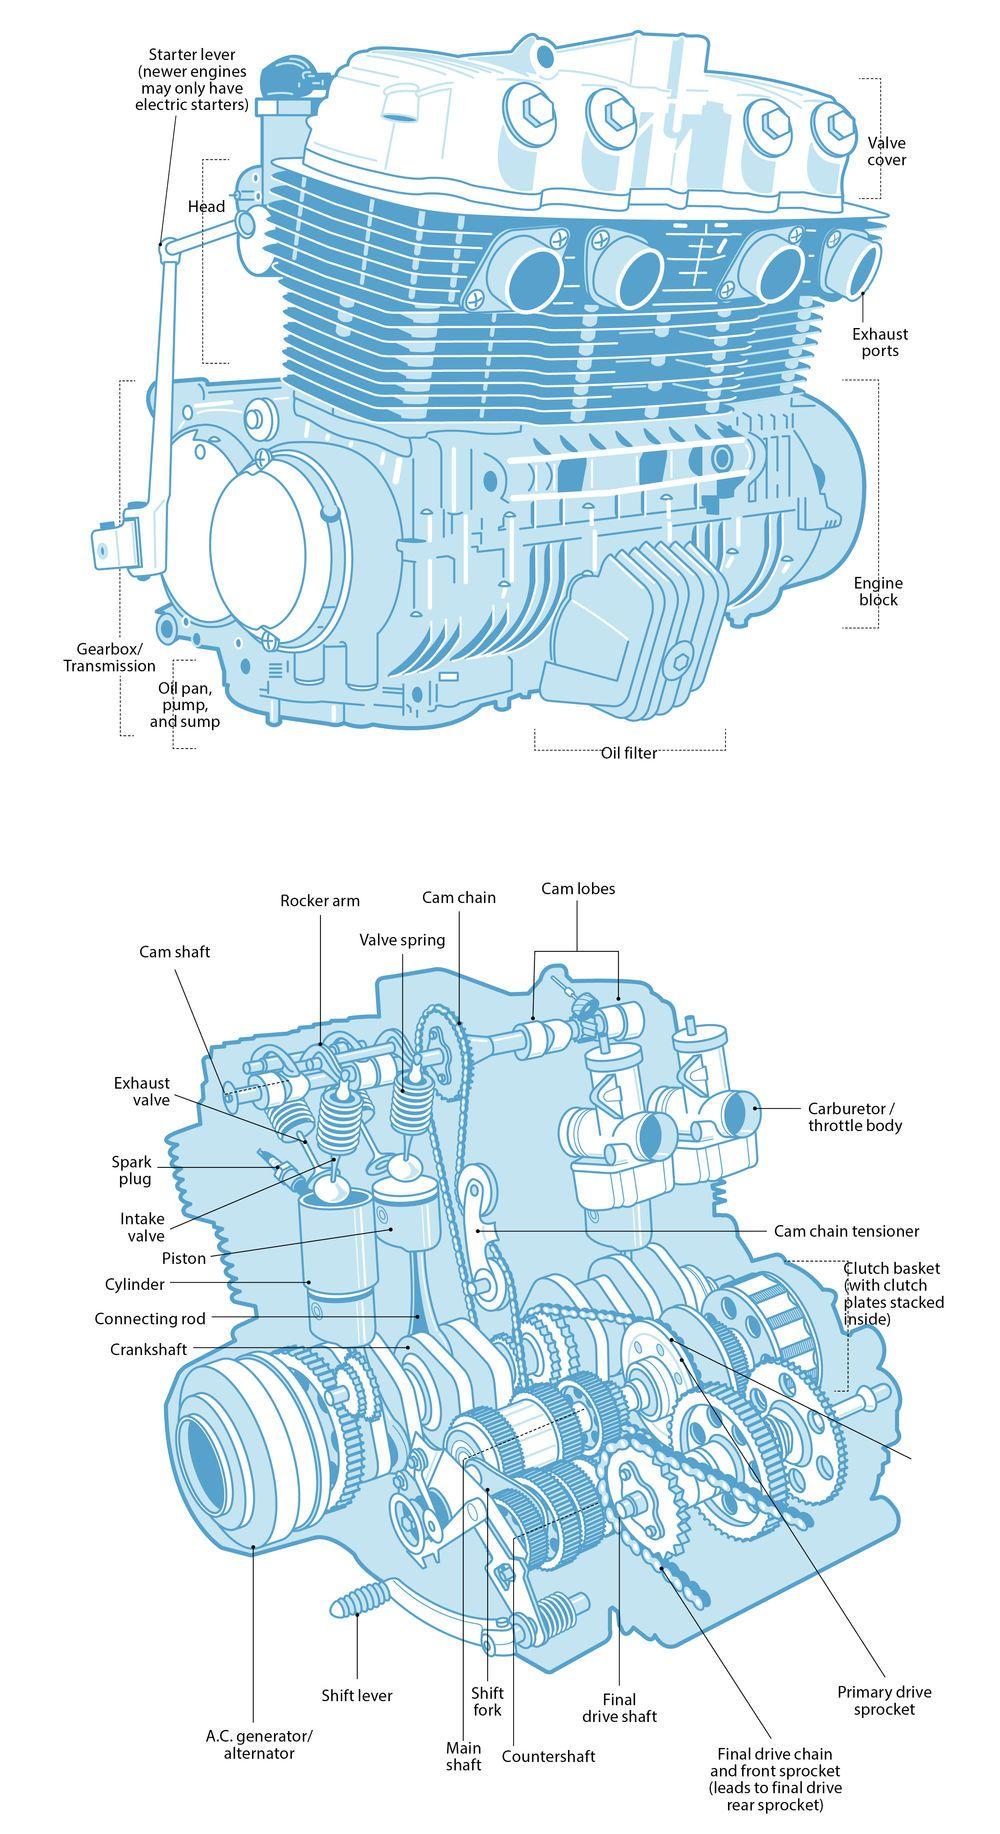 engine anatomy | B_E | Pinterest | Anatomy, Engine and Cars